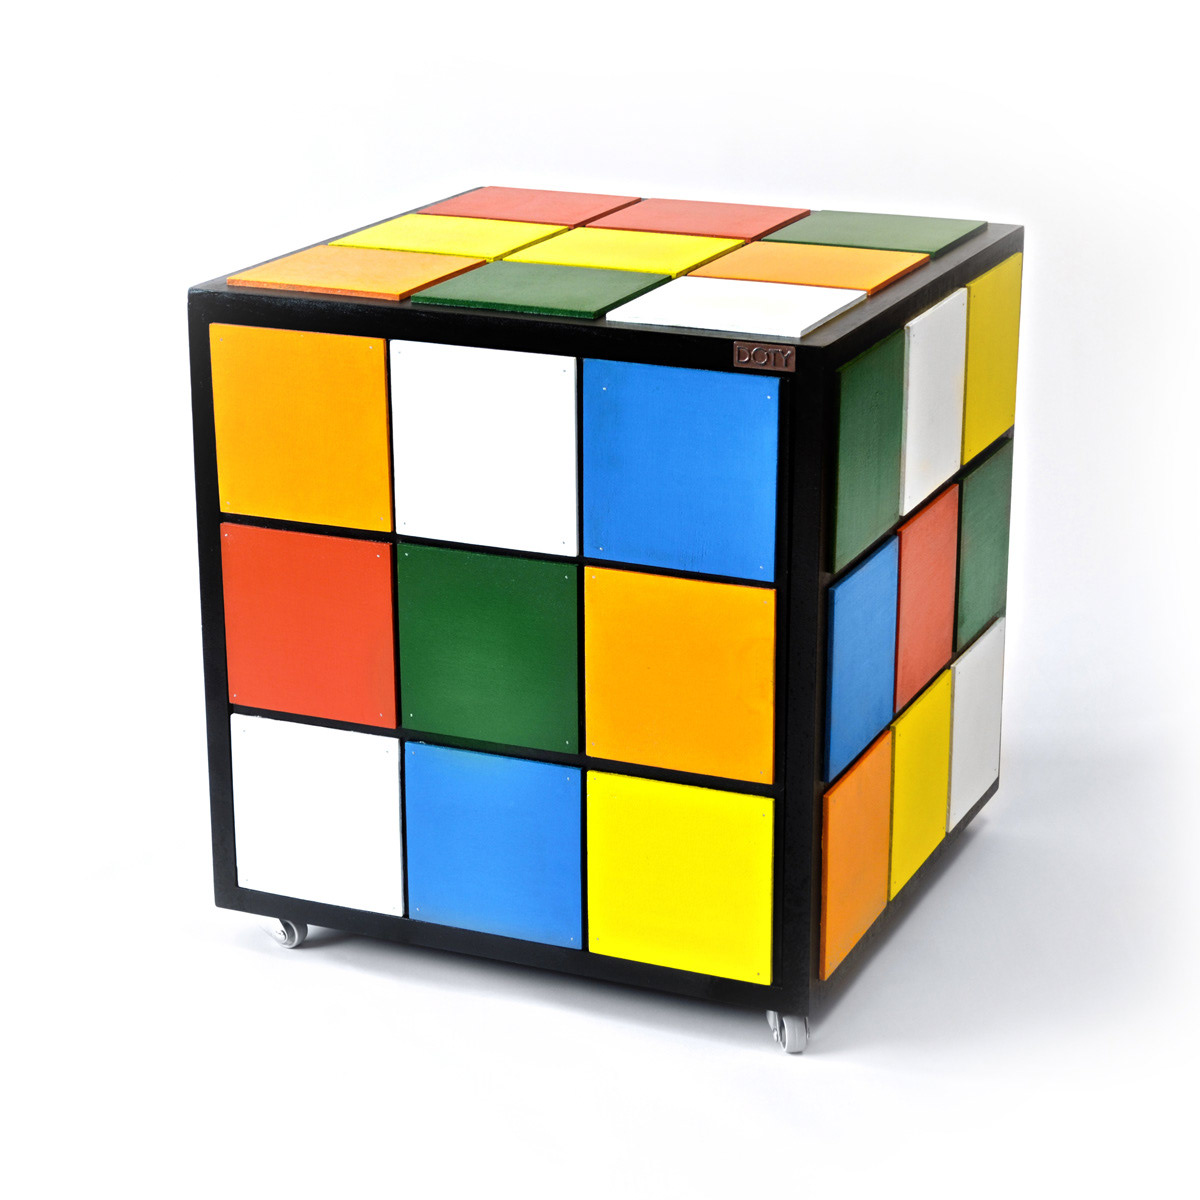 Designed As A Coffee Table Or Nightstand The Rubik S Cube Has Two Partitions Inside Push Pull Mechanism On Doors Makes Handleless And Seamless